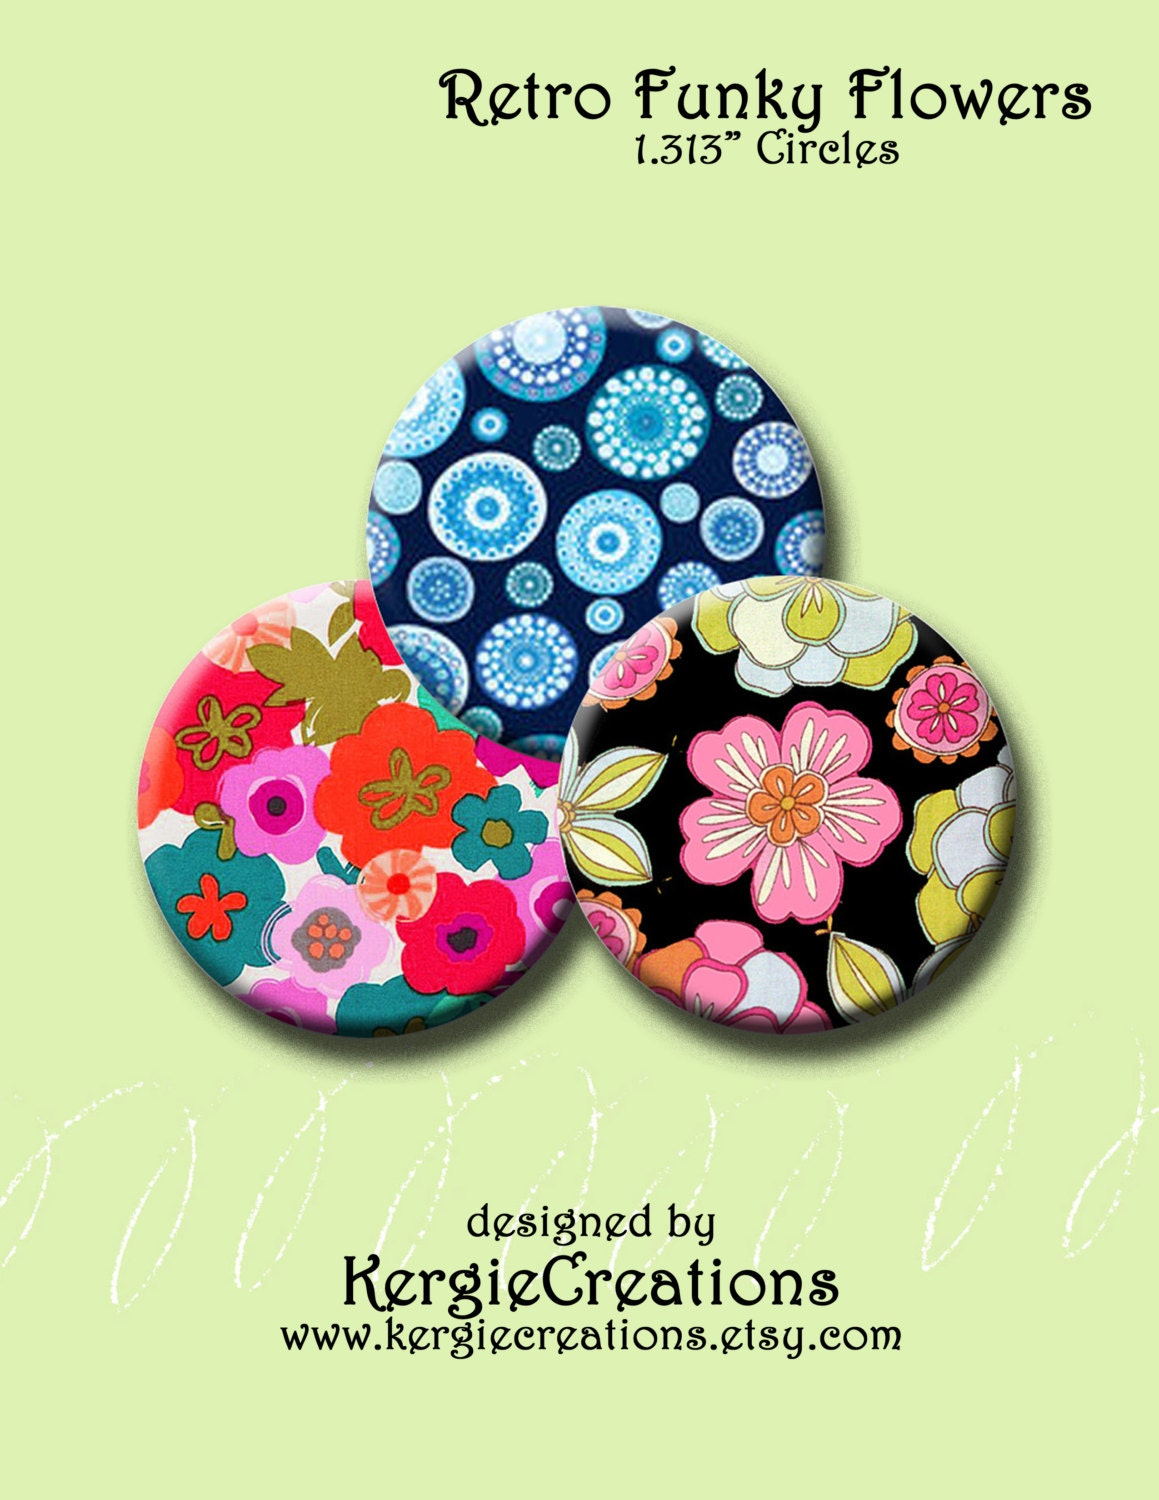 30 Funky And Trendy Nail Art Designs For 2014: RETRO FUNKY FLOWERS 30 X 1.313 Round Images For